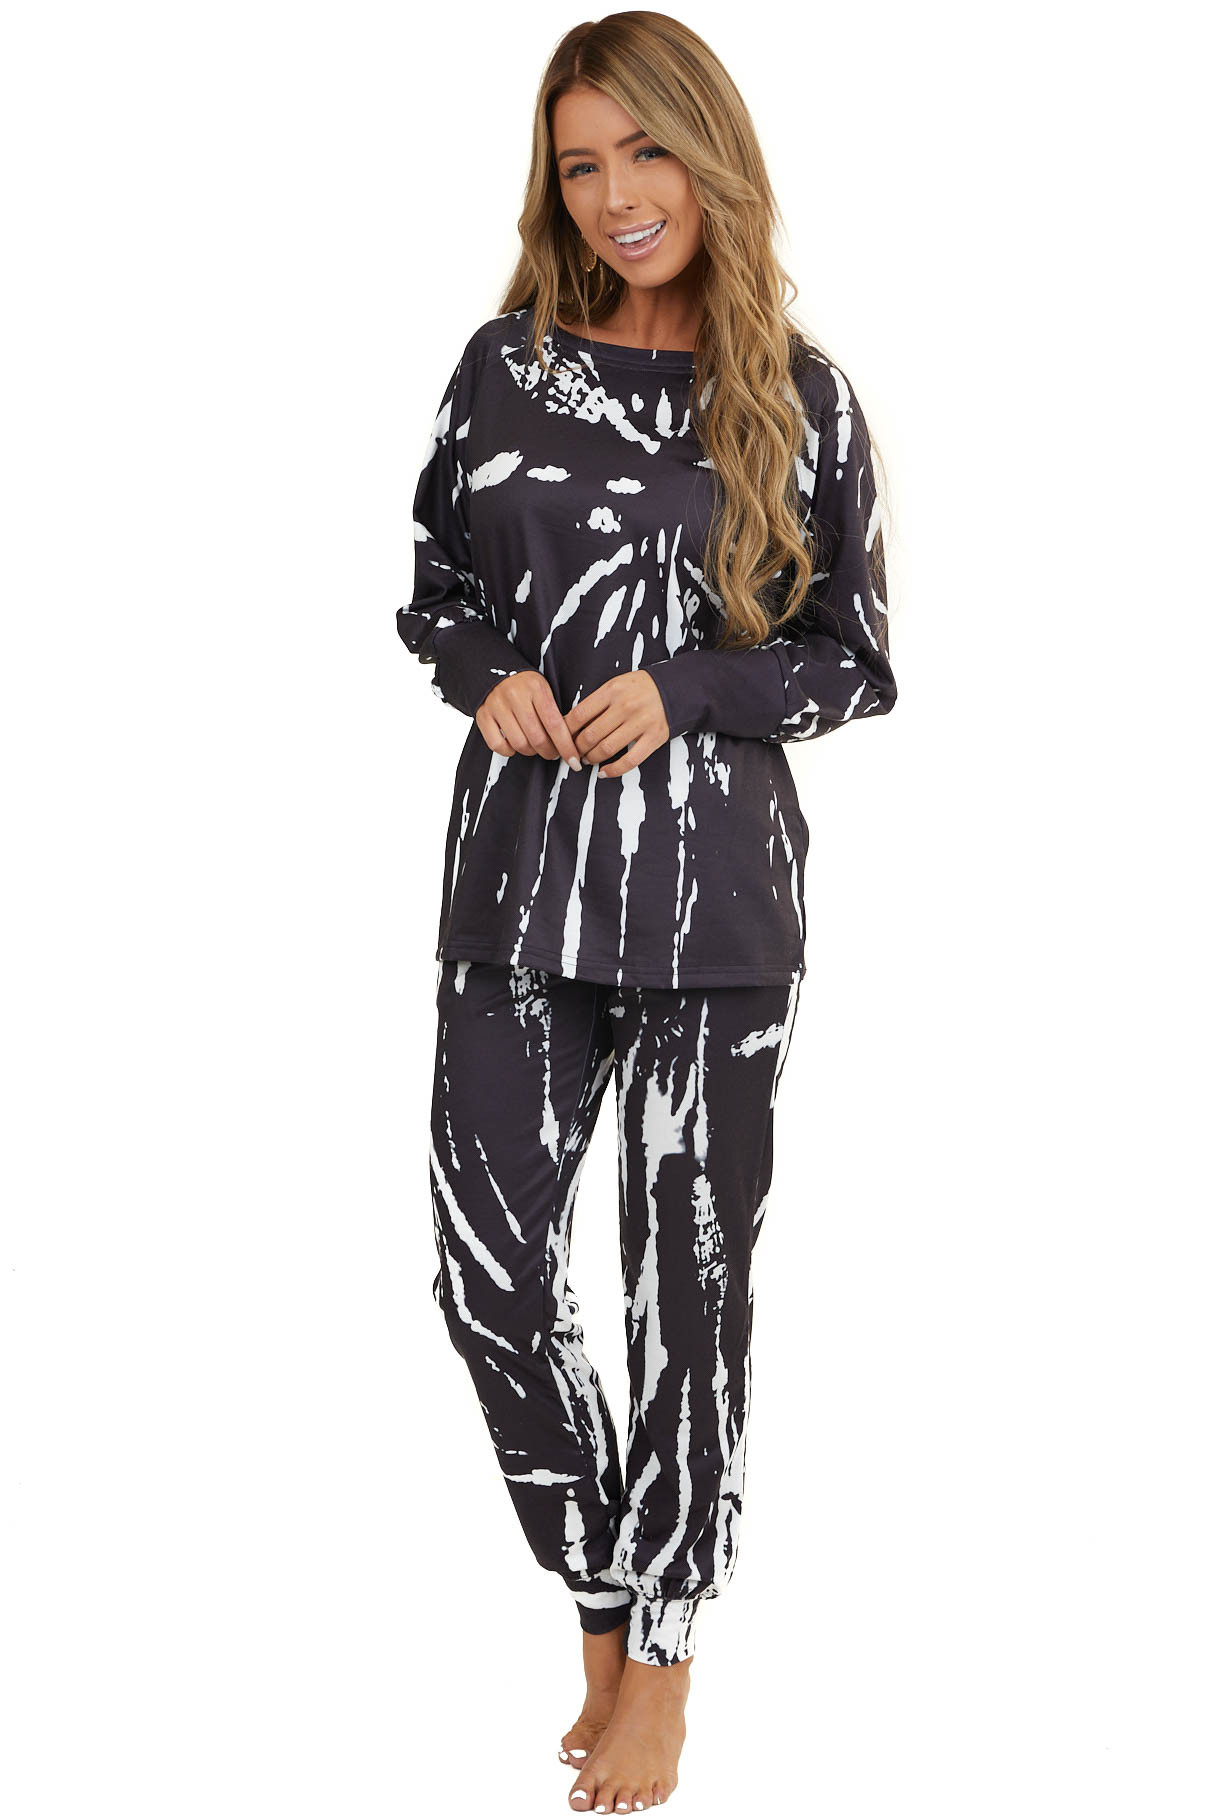 Black and White Tie Dye Long Sleeve Top and Jogger Pant Set